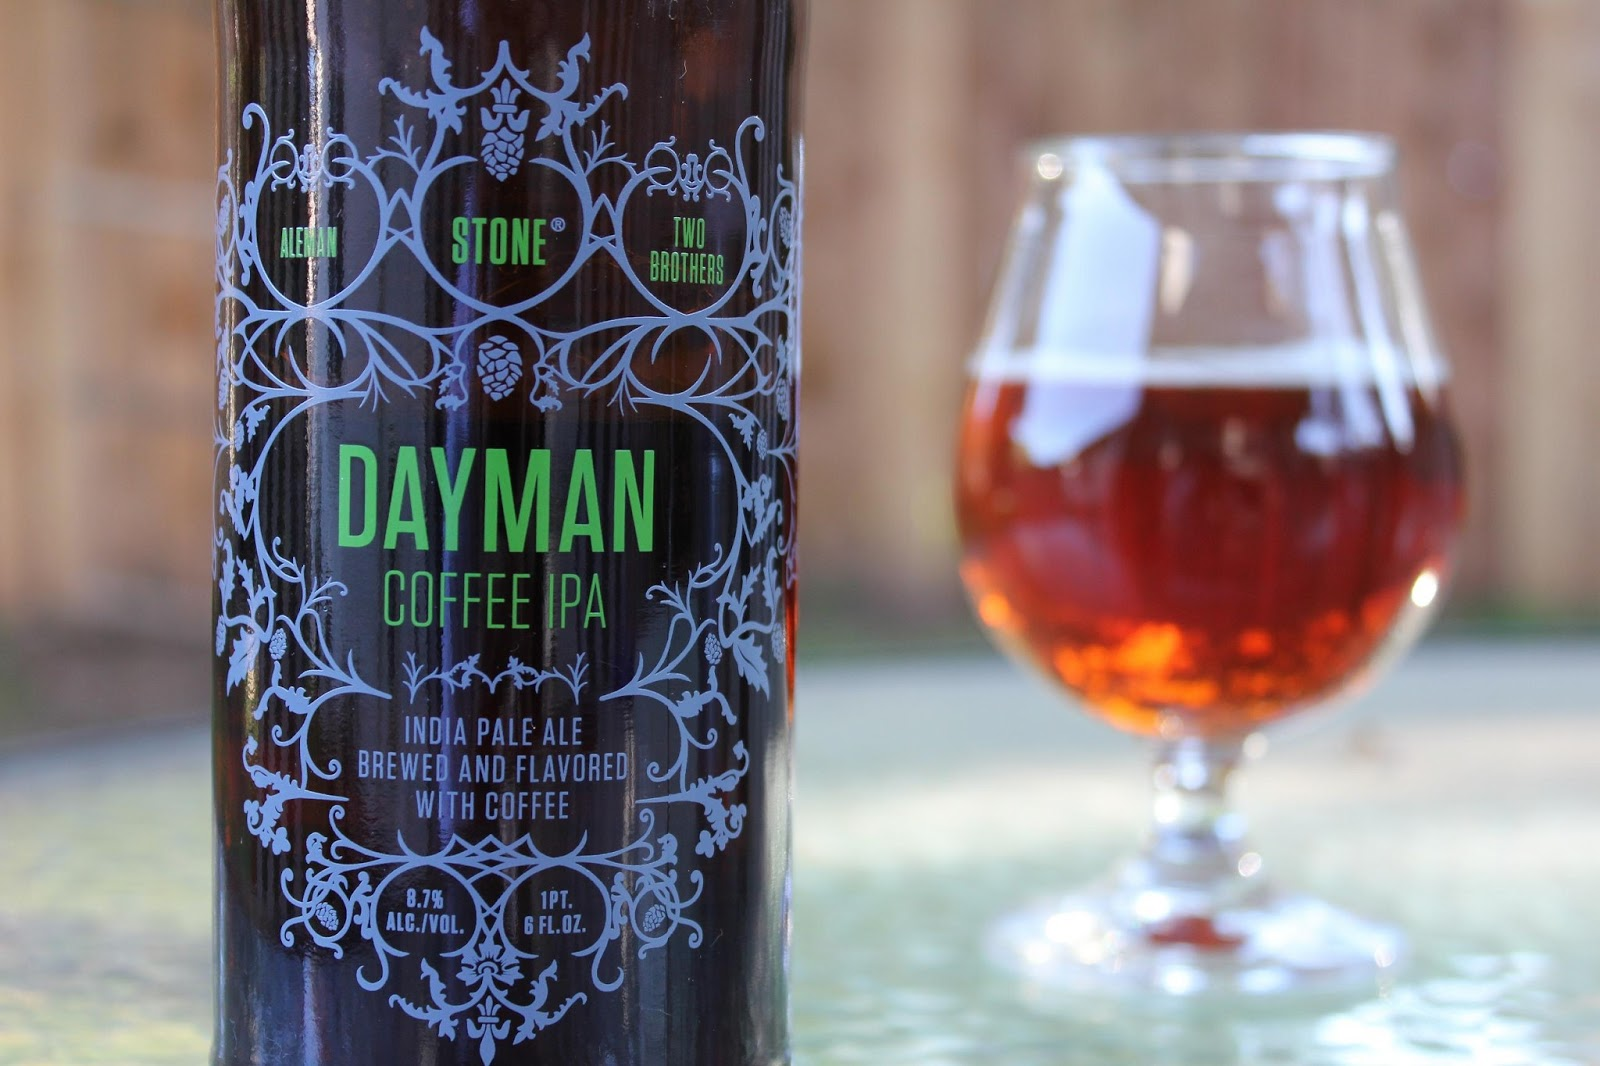 Stone Aleman Two Brothers Dayman Coffee IPA label S